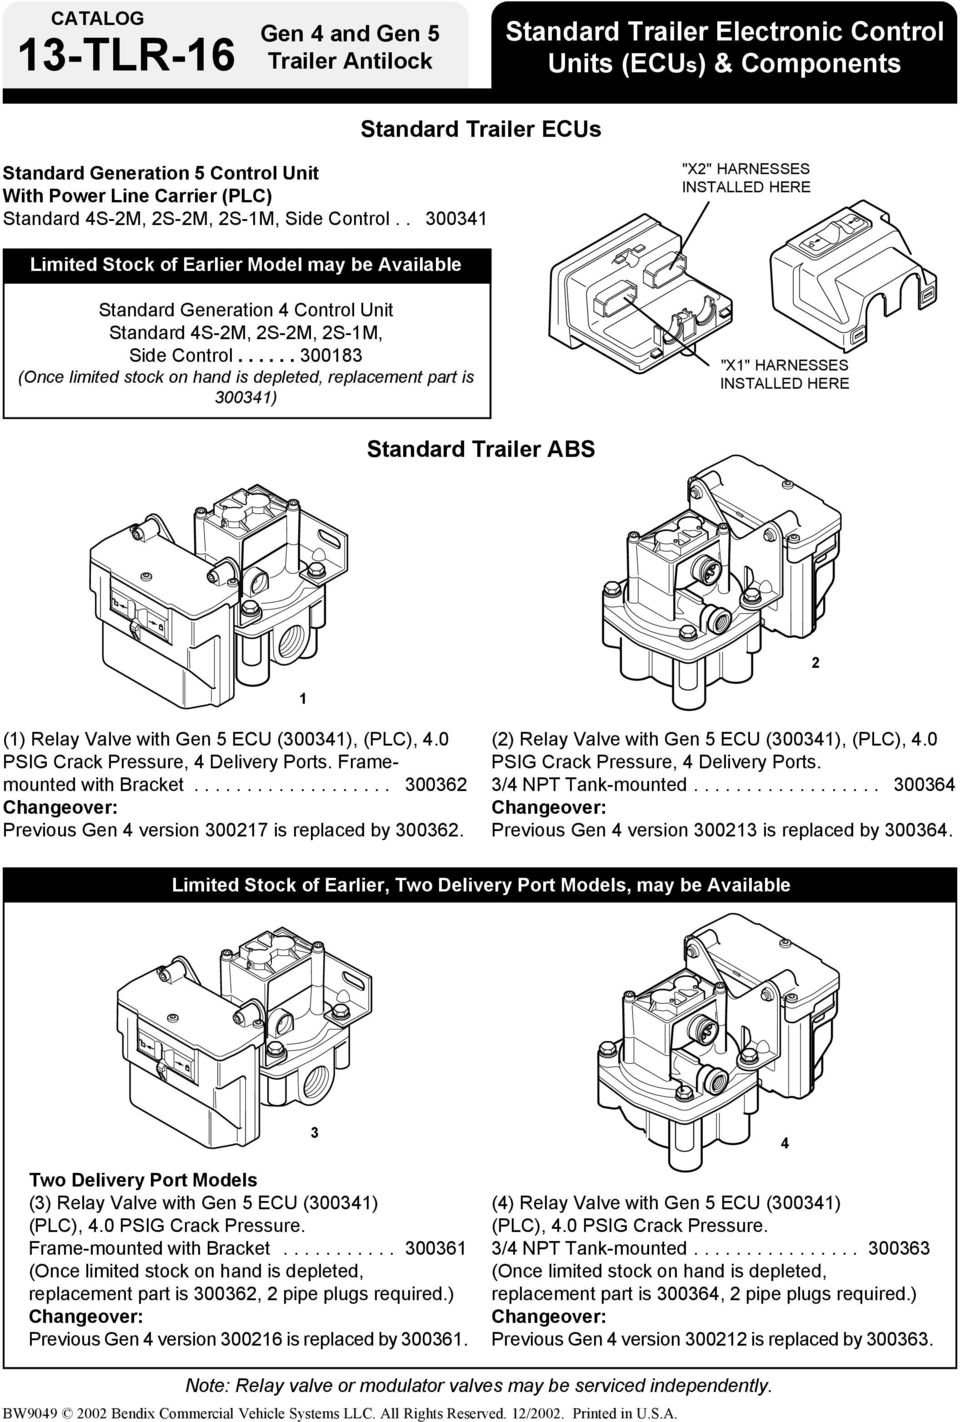 Bendix Abs For Trailers Pdf Haldex Trailer Wiring Diagrams 300341 X2 Harnesses Installed Here Limited Stock Of Earlier Model May Be Available